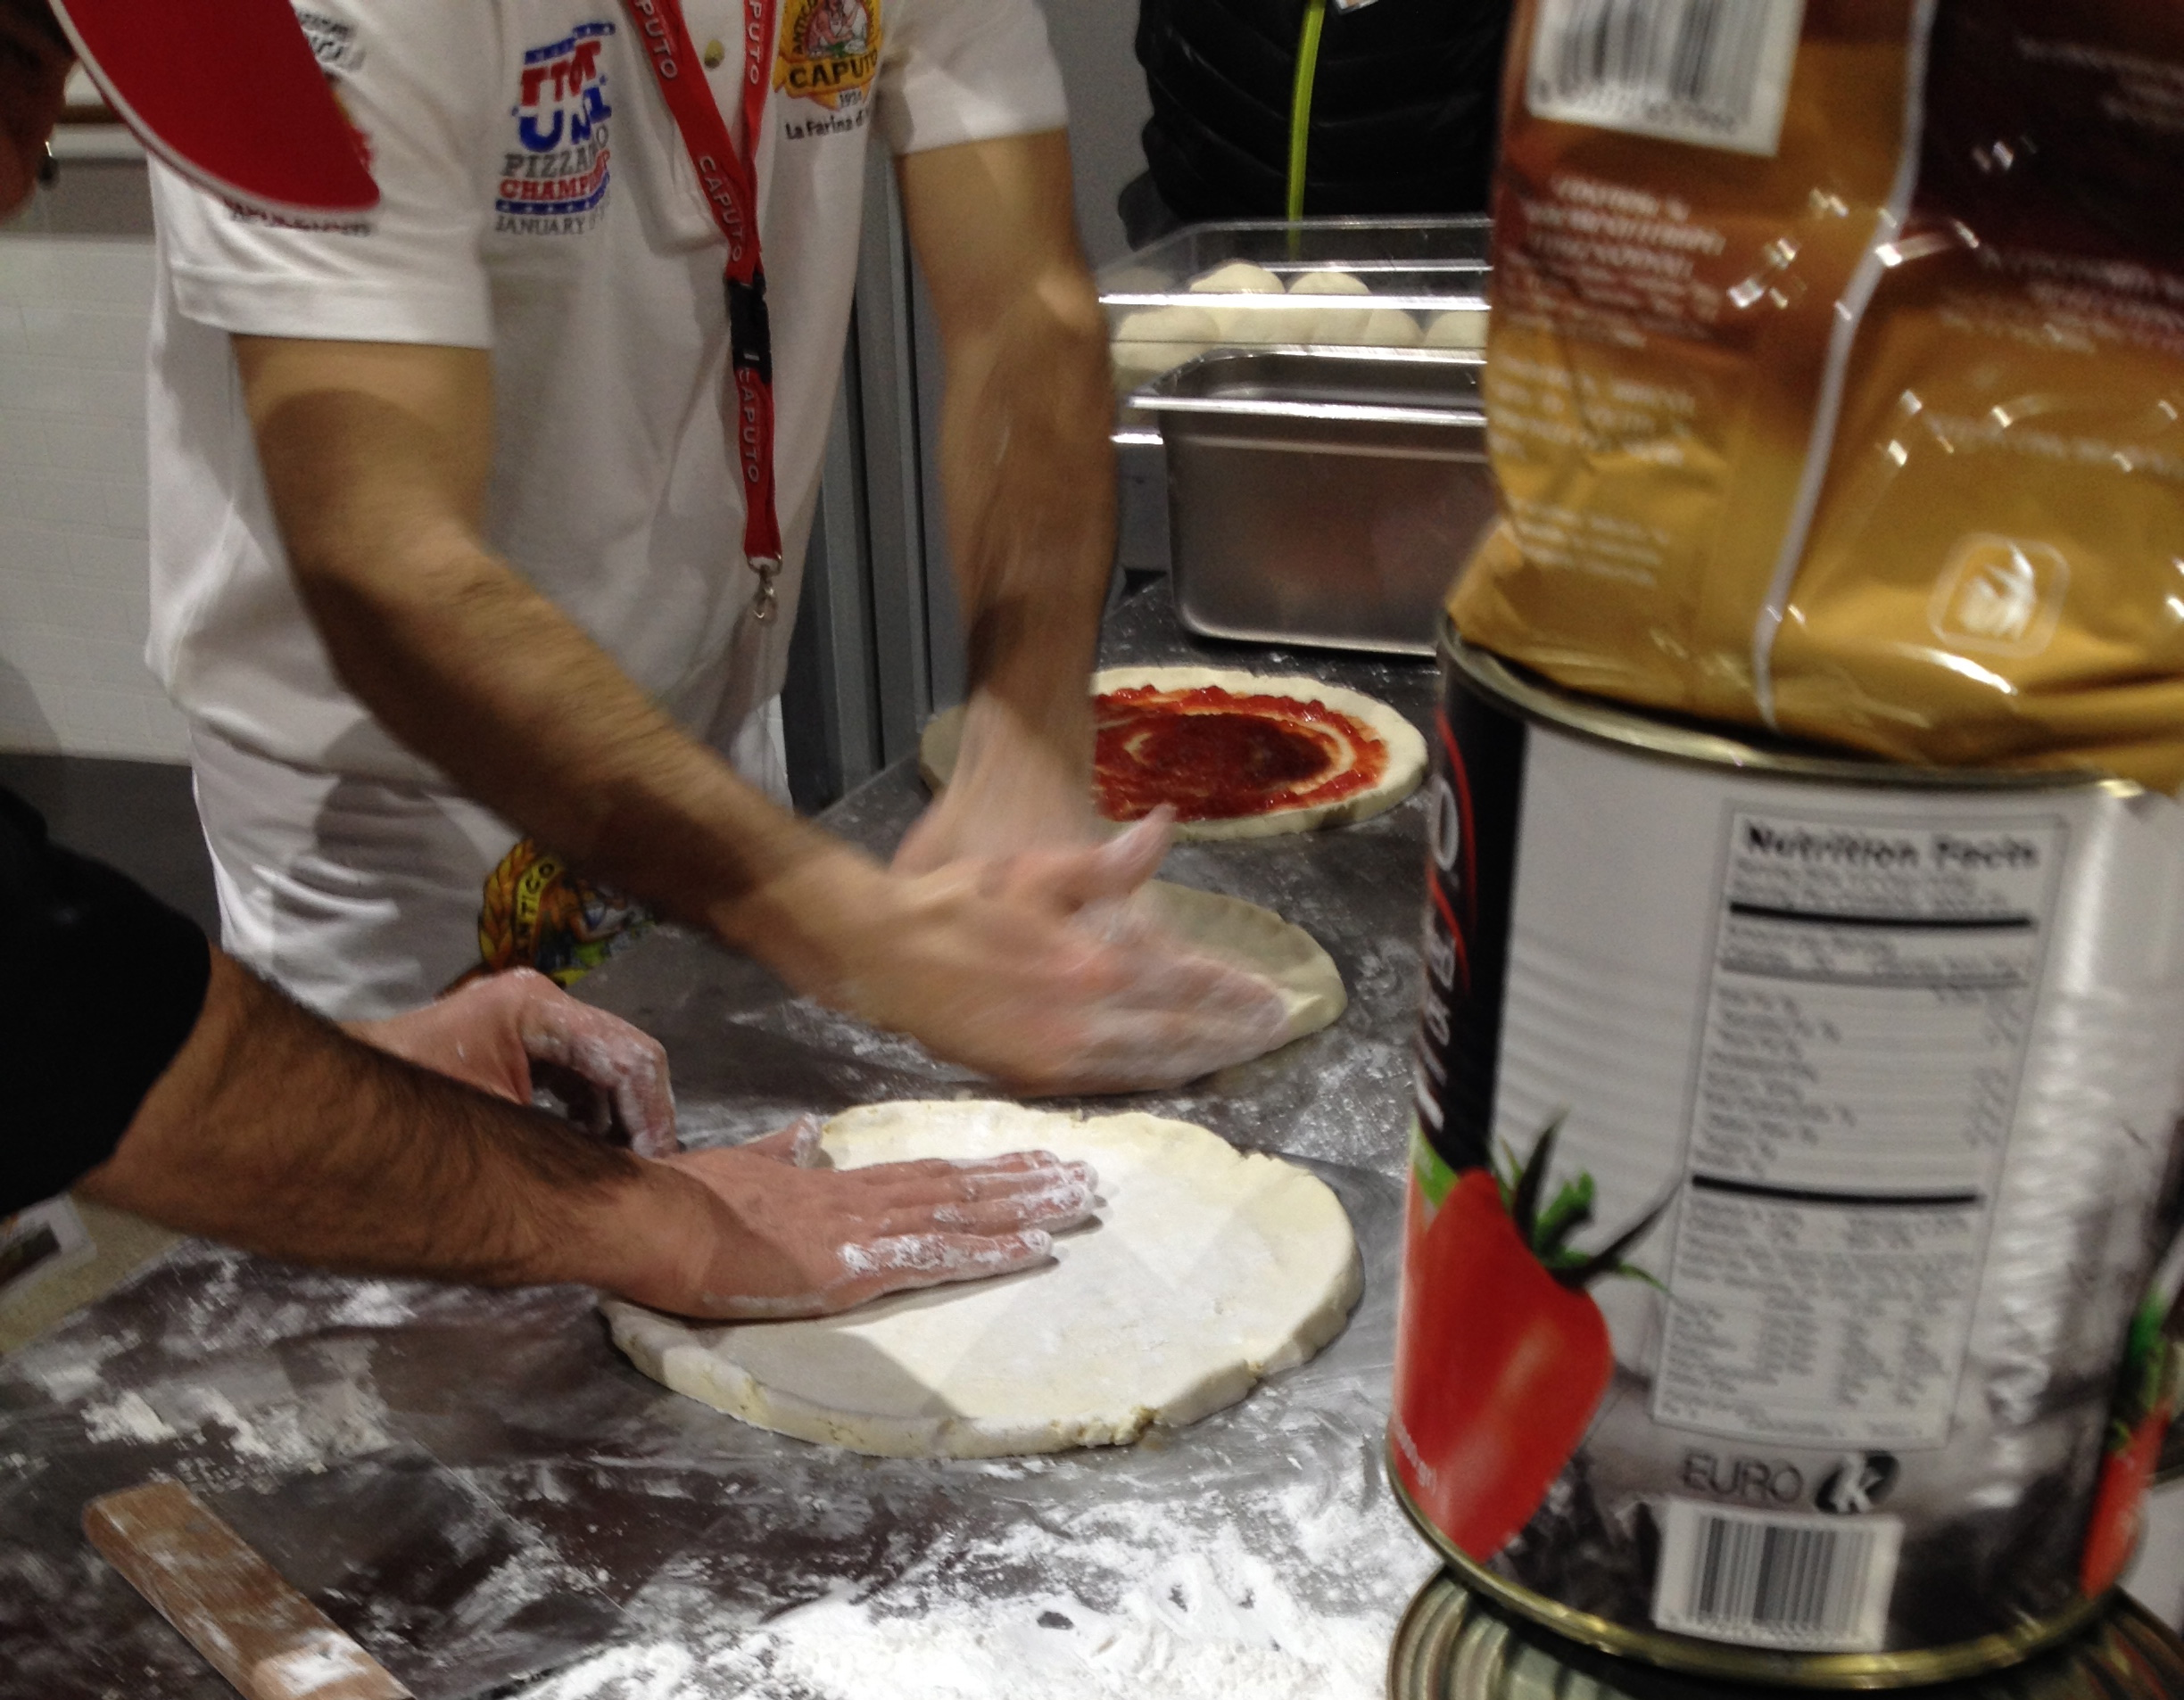 Gluten Free Flour And Pizza Charles Scicolone On Wine